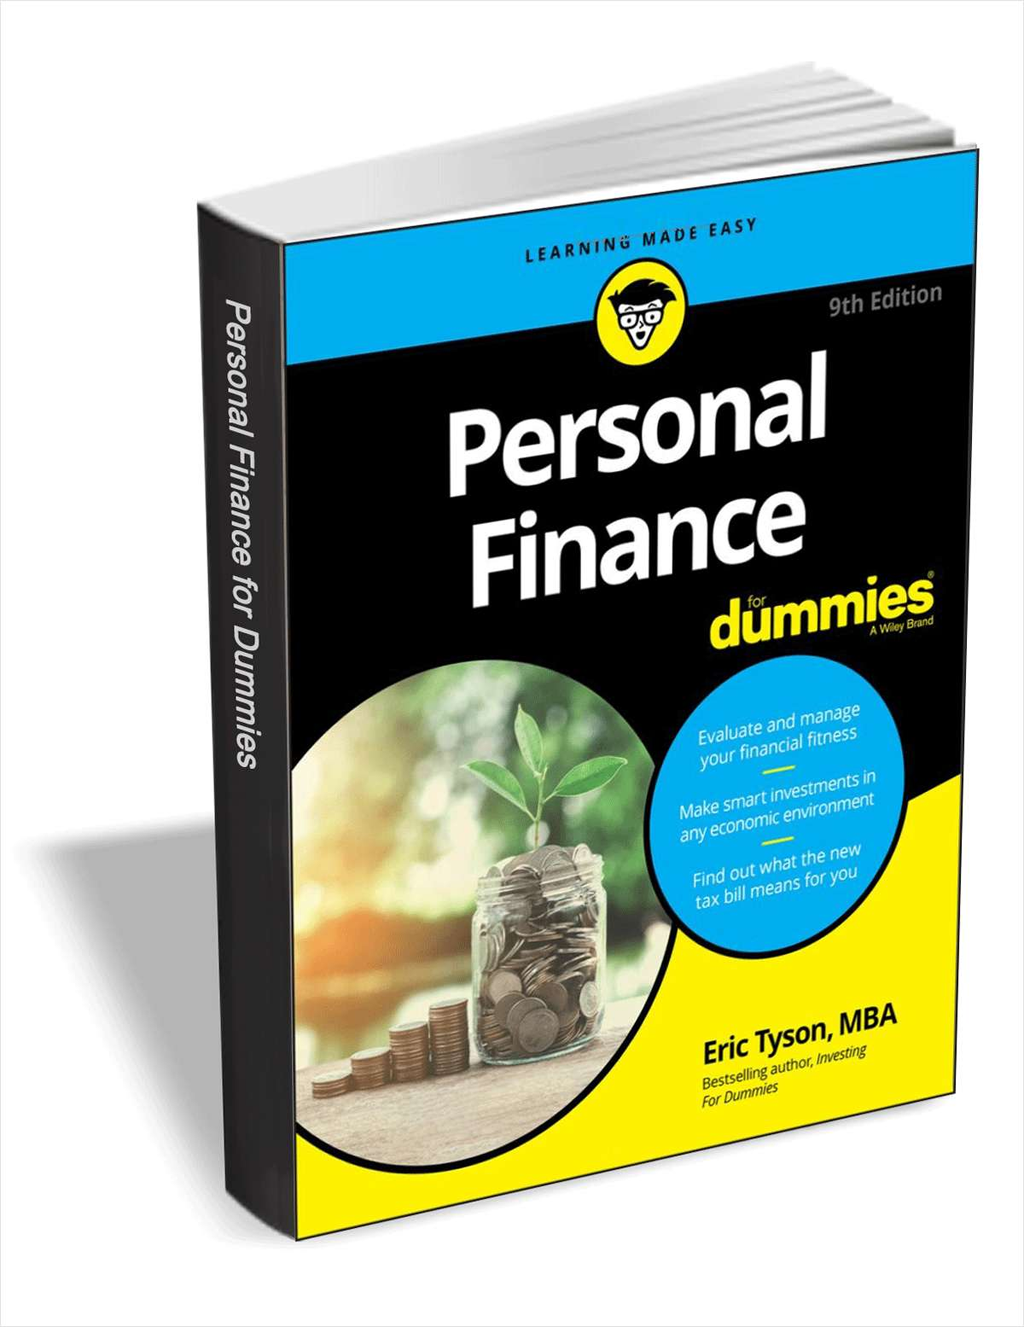 Personal Finance for Dummies, 9th Edition ($16.99 Value) FREE for a Limited Time Screenshot